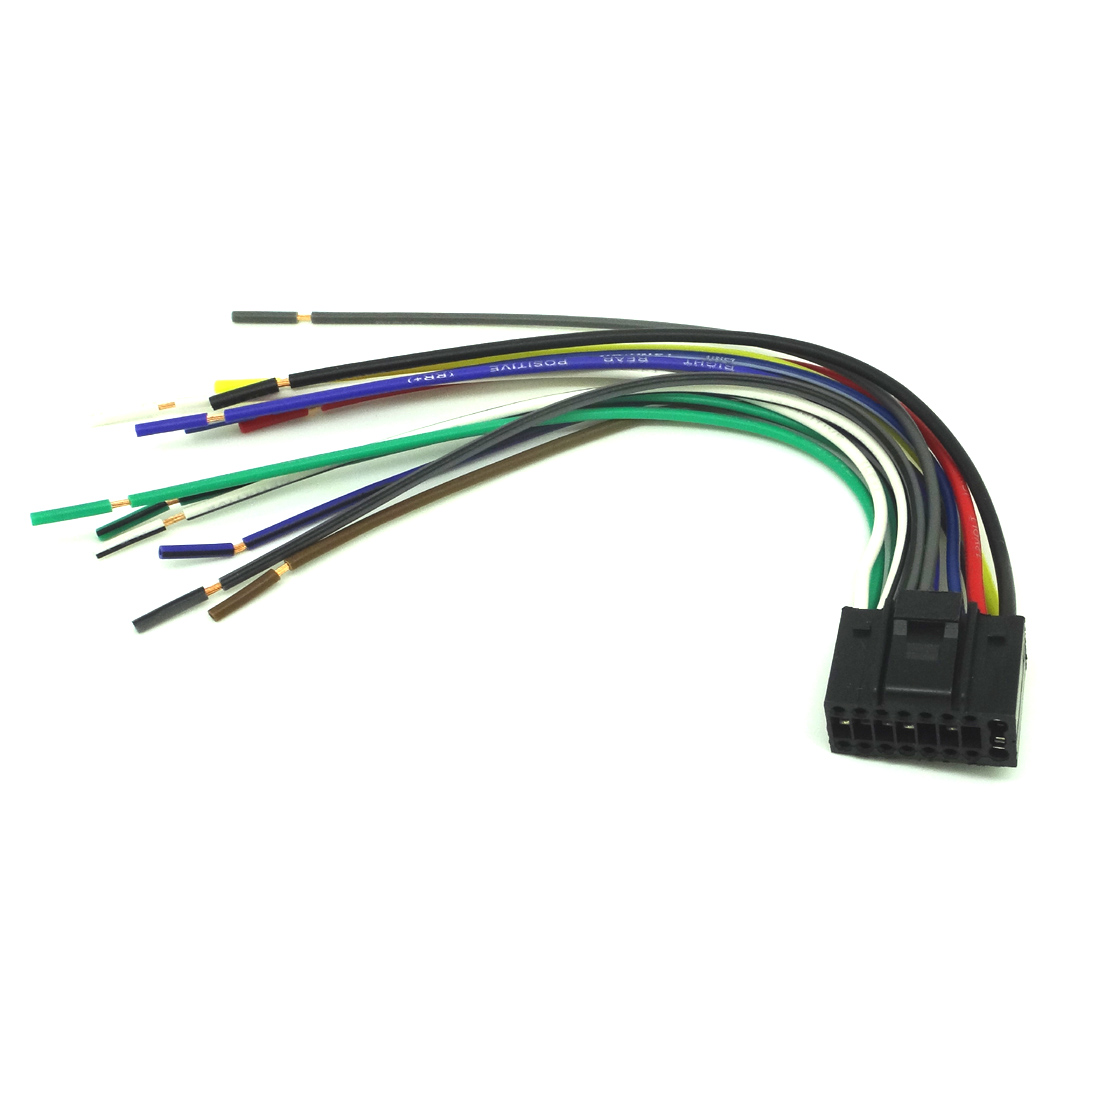 player 16 pin radio car audio stereo wire harness for kenwood ddx3048 ddx318 ddx319 ddx370 ddx4048bt ddx418 ddx419 ddx470 ddx719 [ 1100 x 1100 Pixel ]